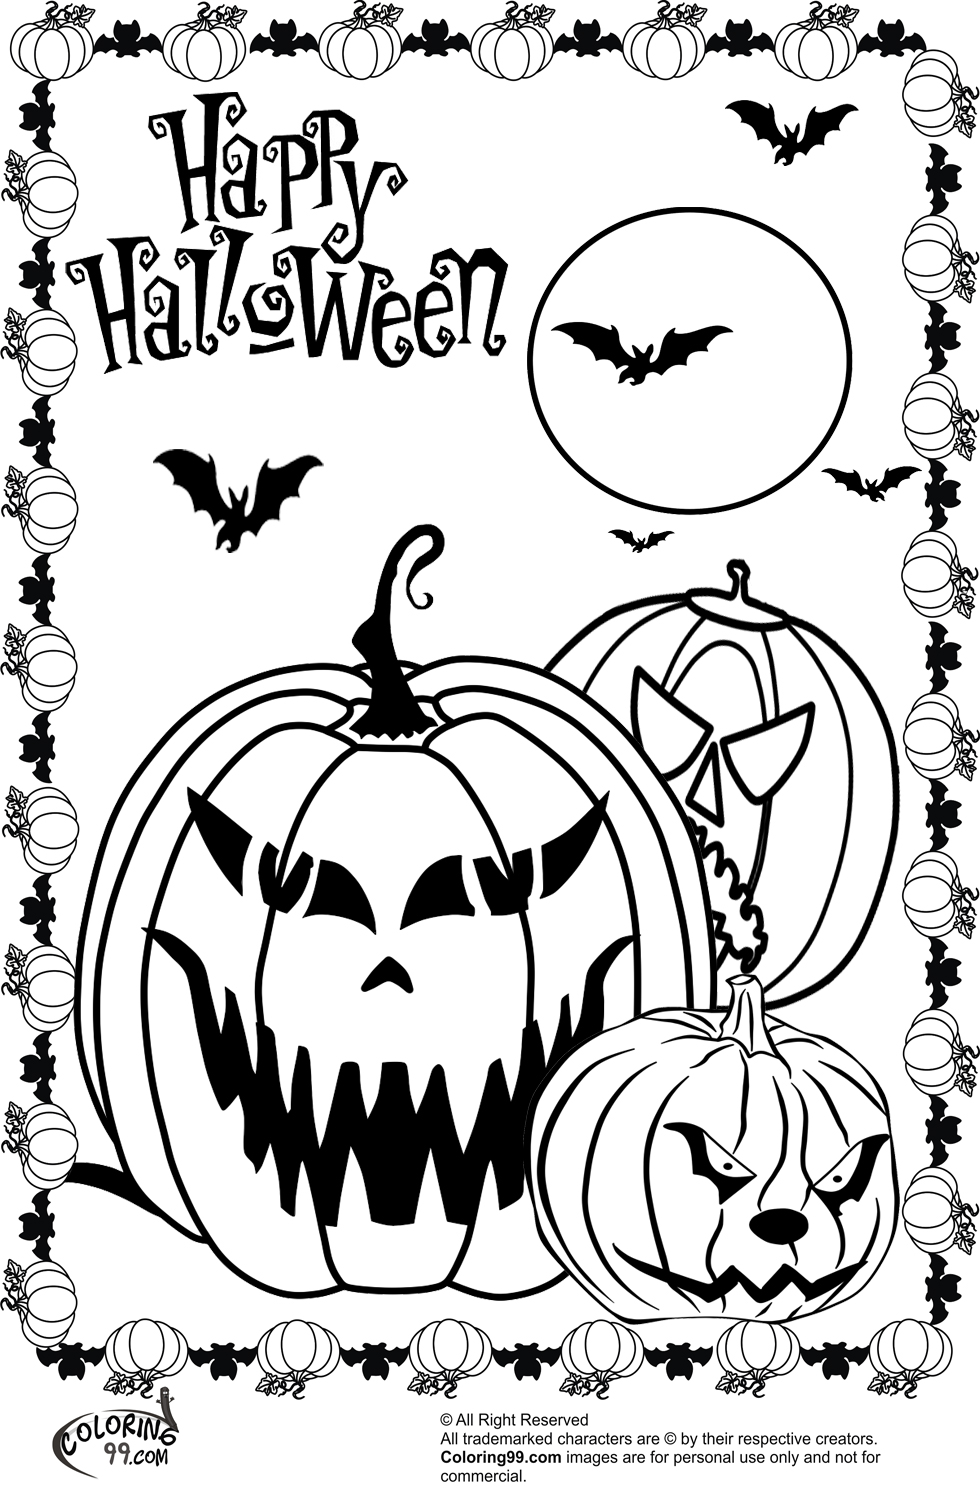 halween coloring pages - photo#43